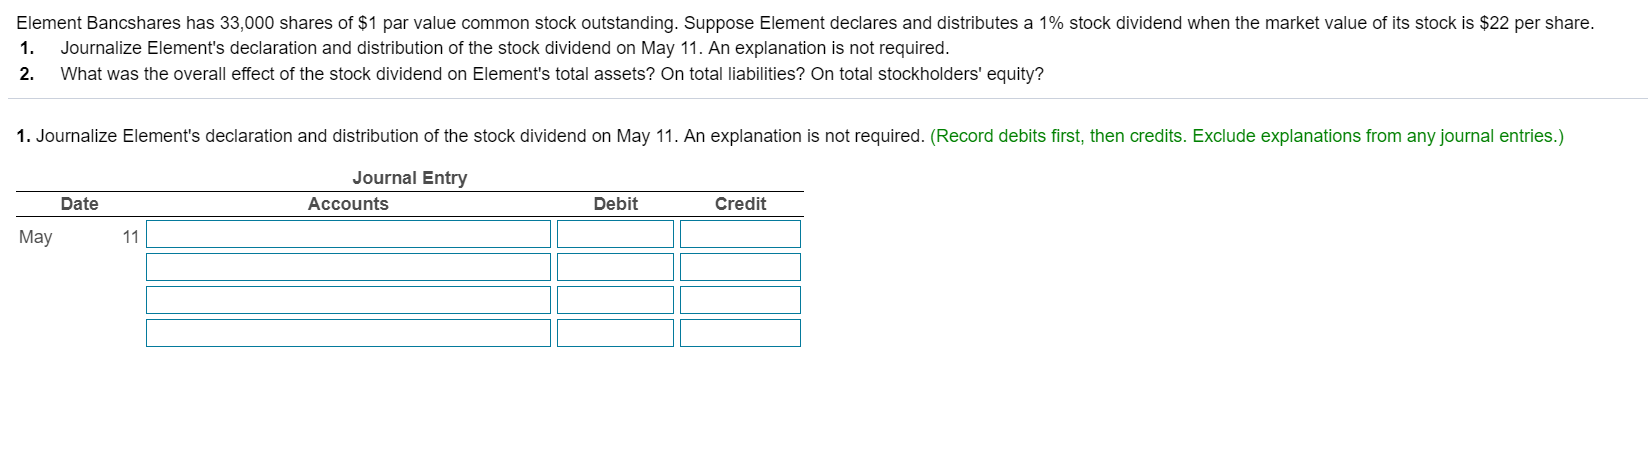 Element Bancshares has 33,000 shares of $1 par value common stock outstanding. Suppose Element declares and distributes a 1% stock dividend when the market value of its stock is $22 per share. 1. Journalize Element's declaration and distribution of the stock dividend on May 11. An explanation is not required. 2. What was the overall effect of the stock dividend on Element's total assets? On total liabilities? On total stockholders' equity? 1. Journalize Element's declaration and distribution of the stock dividend on May 11. An explanation is not required. (Record debits first, then credits. Exclude explanations from any journal entries.) Journal Entry Date Accounts Debit Credit May 11